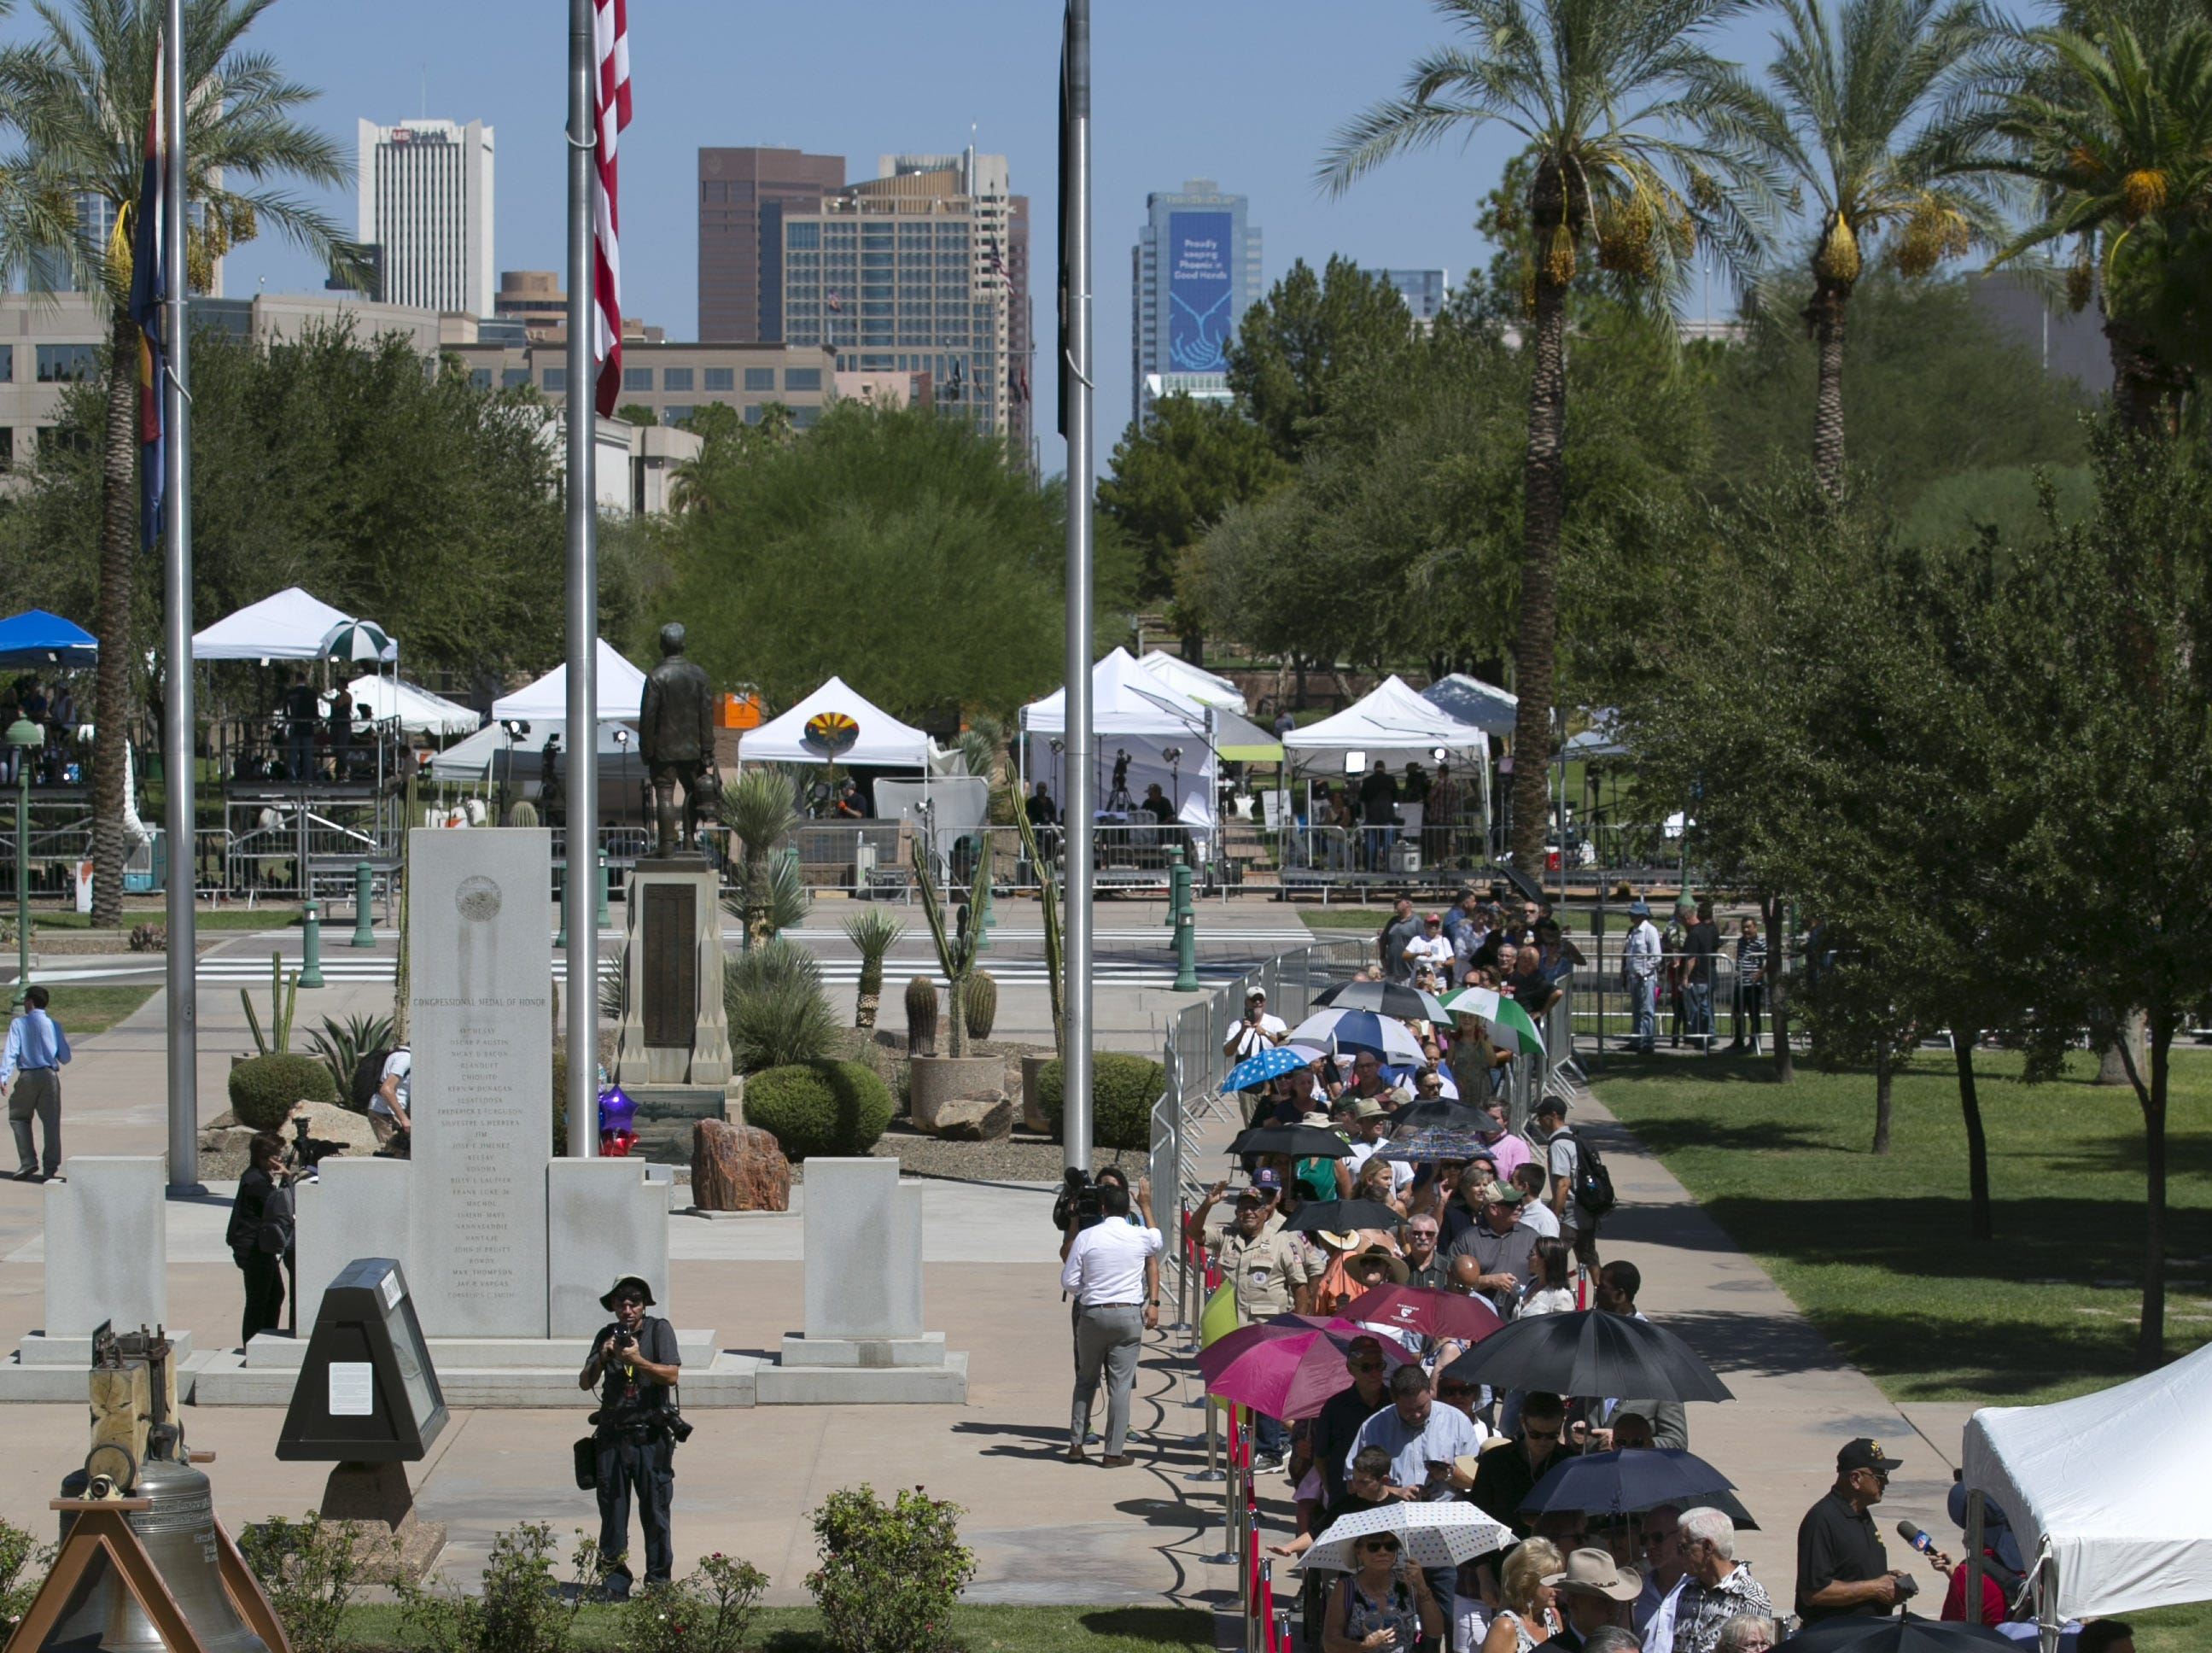 People wait in line to enter the Arizona Capitol building during a public viewing as Senator John McCain lies in state in Phoenix on Wednesday, August 29, 2018.